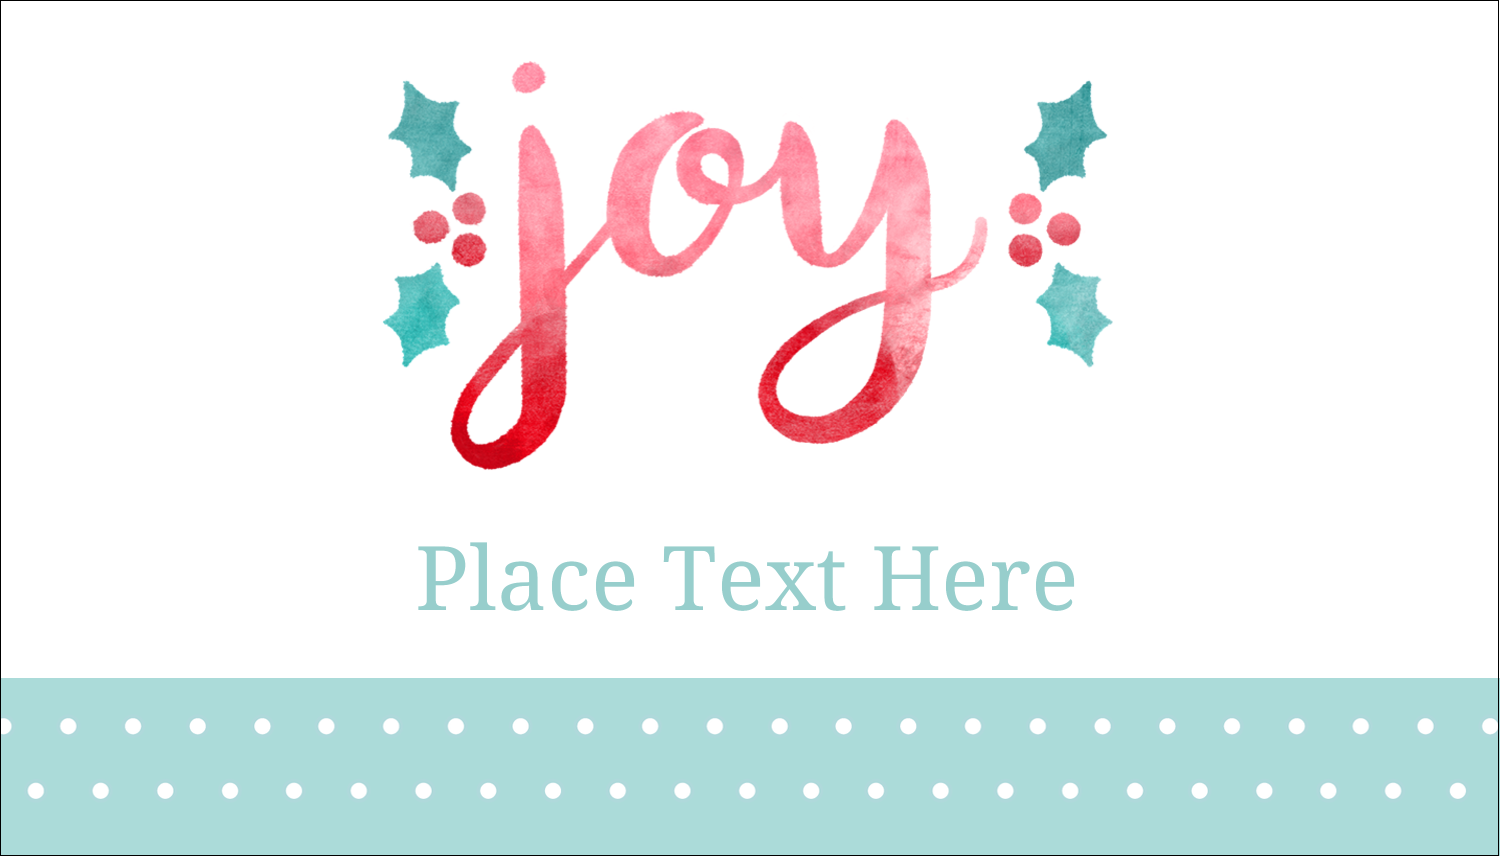 """Bring """"hollyday"""" cheer to custom projects with pre-designed Handwritten Joy templates."""